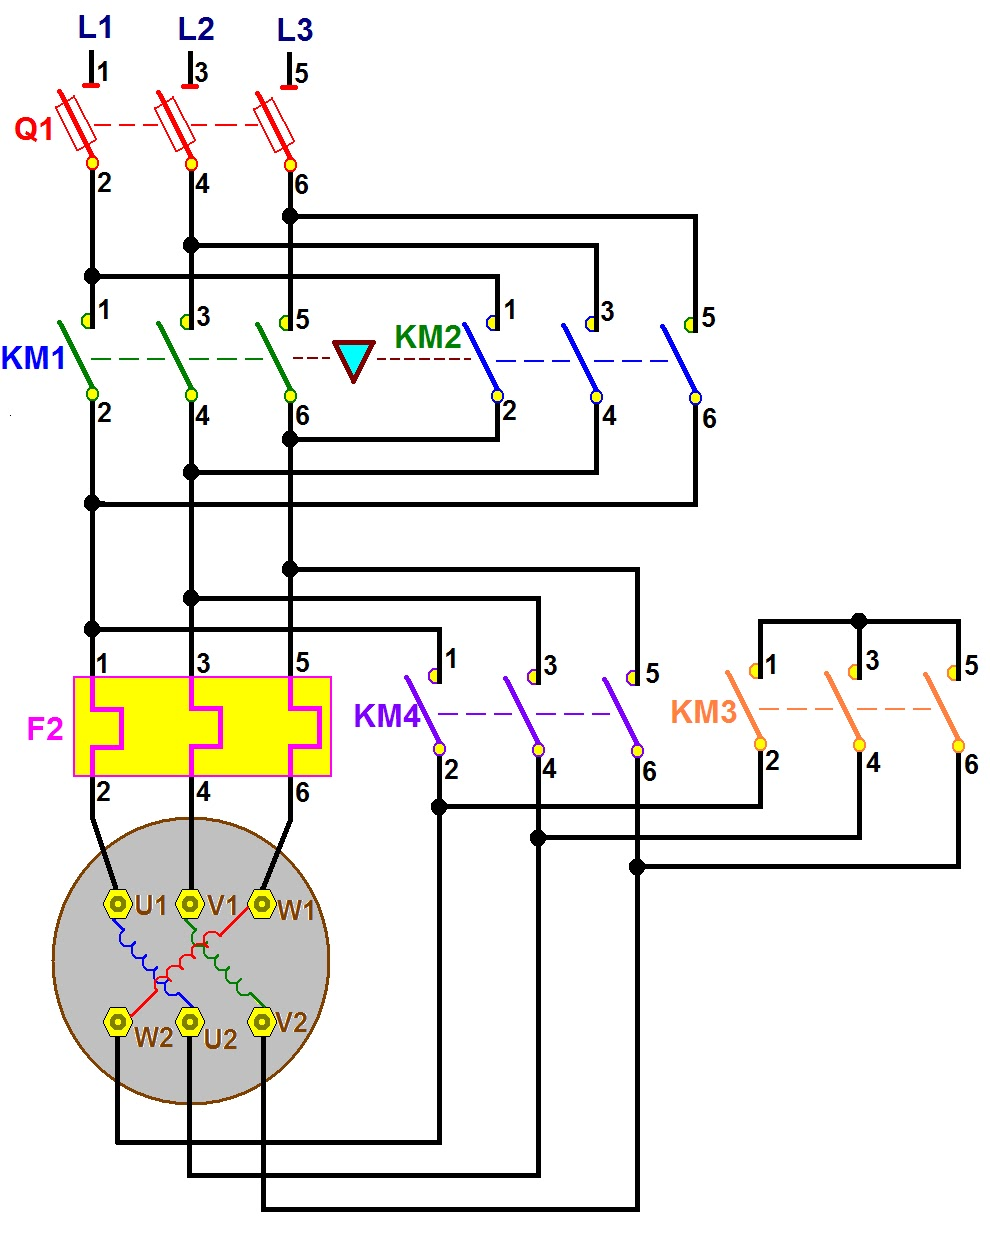 Watch furthermore Generator Auto Start Circuit Diagram in addition Deep Dive Chevrolet Bolt Battery Pack Motor And More besides Evolution Automotive Connectivity Autonomous Vehicle Technology Drives Need Speed Bandwidth as well Bldc Motor Control. on dc electric motor diagram